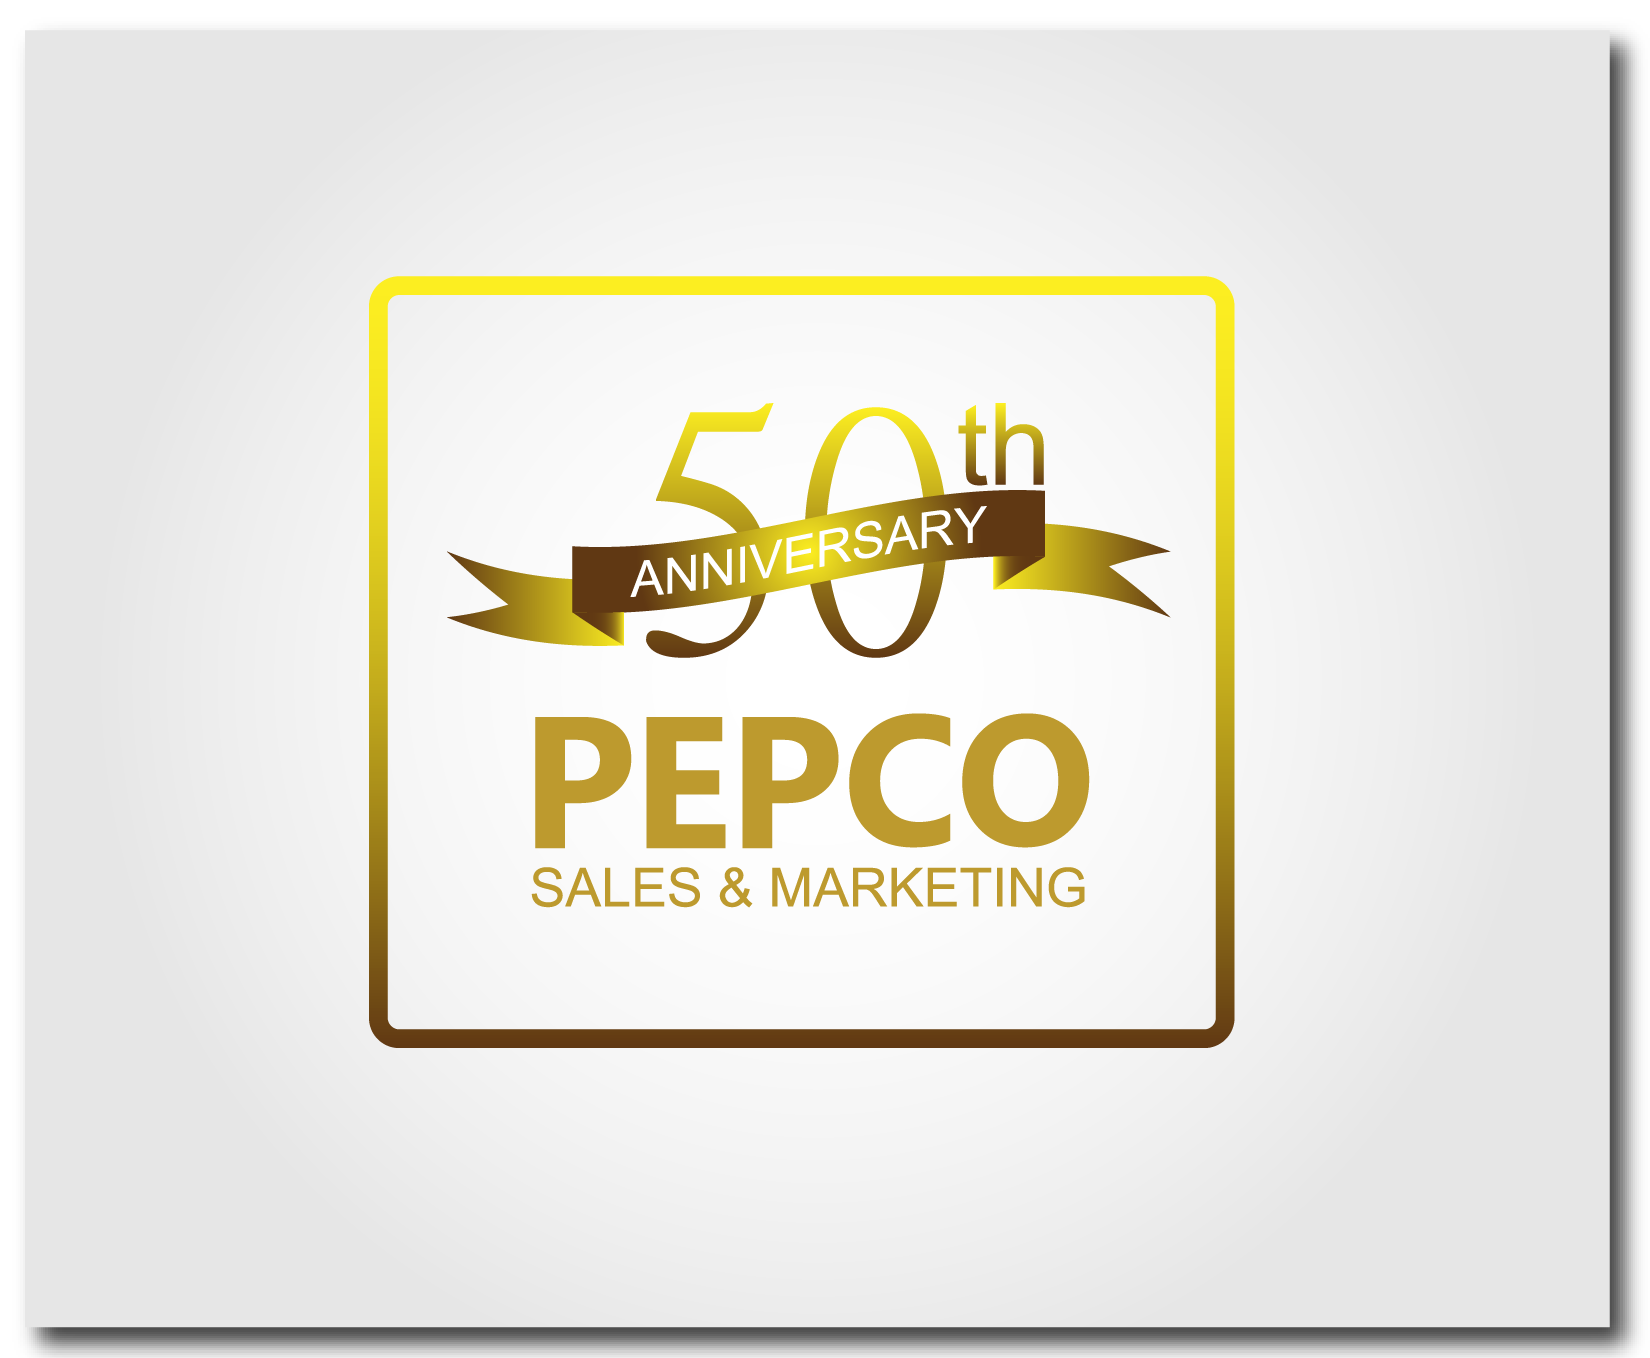 Logo Design by Asep P Kurnia - Entry No. 88 in the Logo Design Contest 50th Anniversary Logo Design for Pepco Sales  & Marketing.